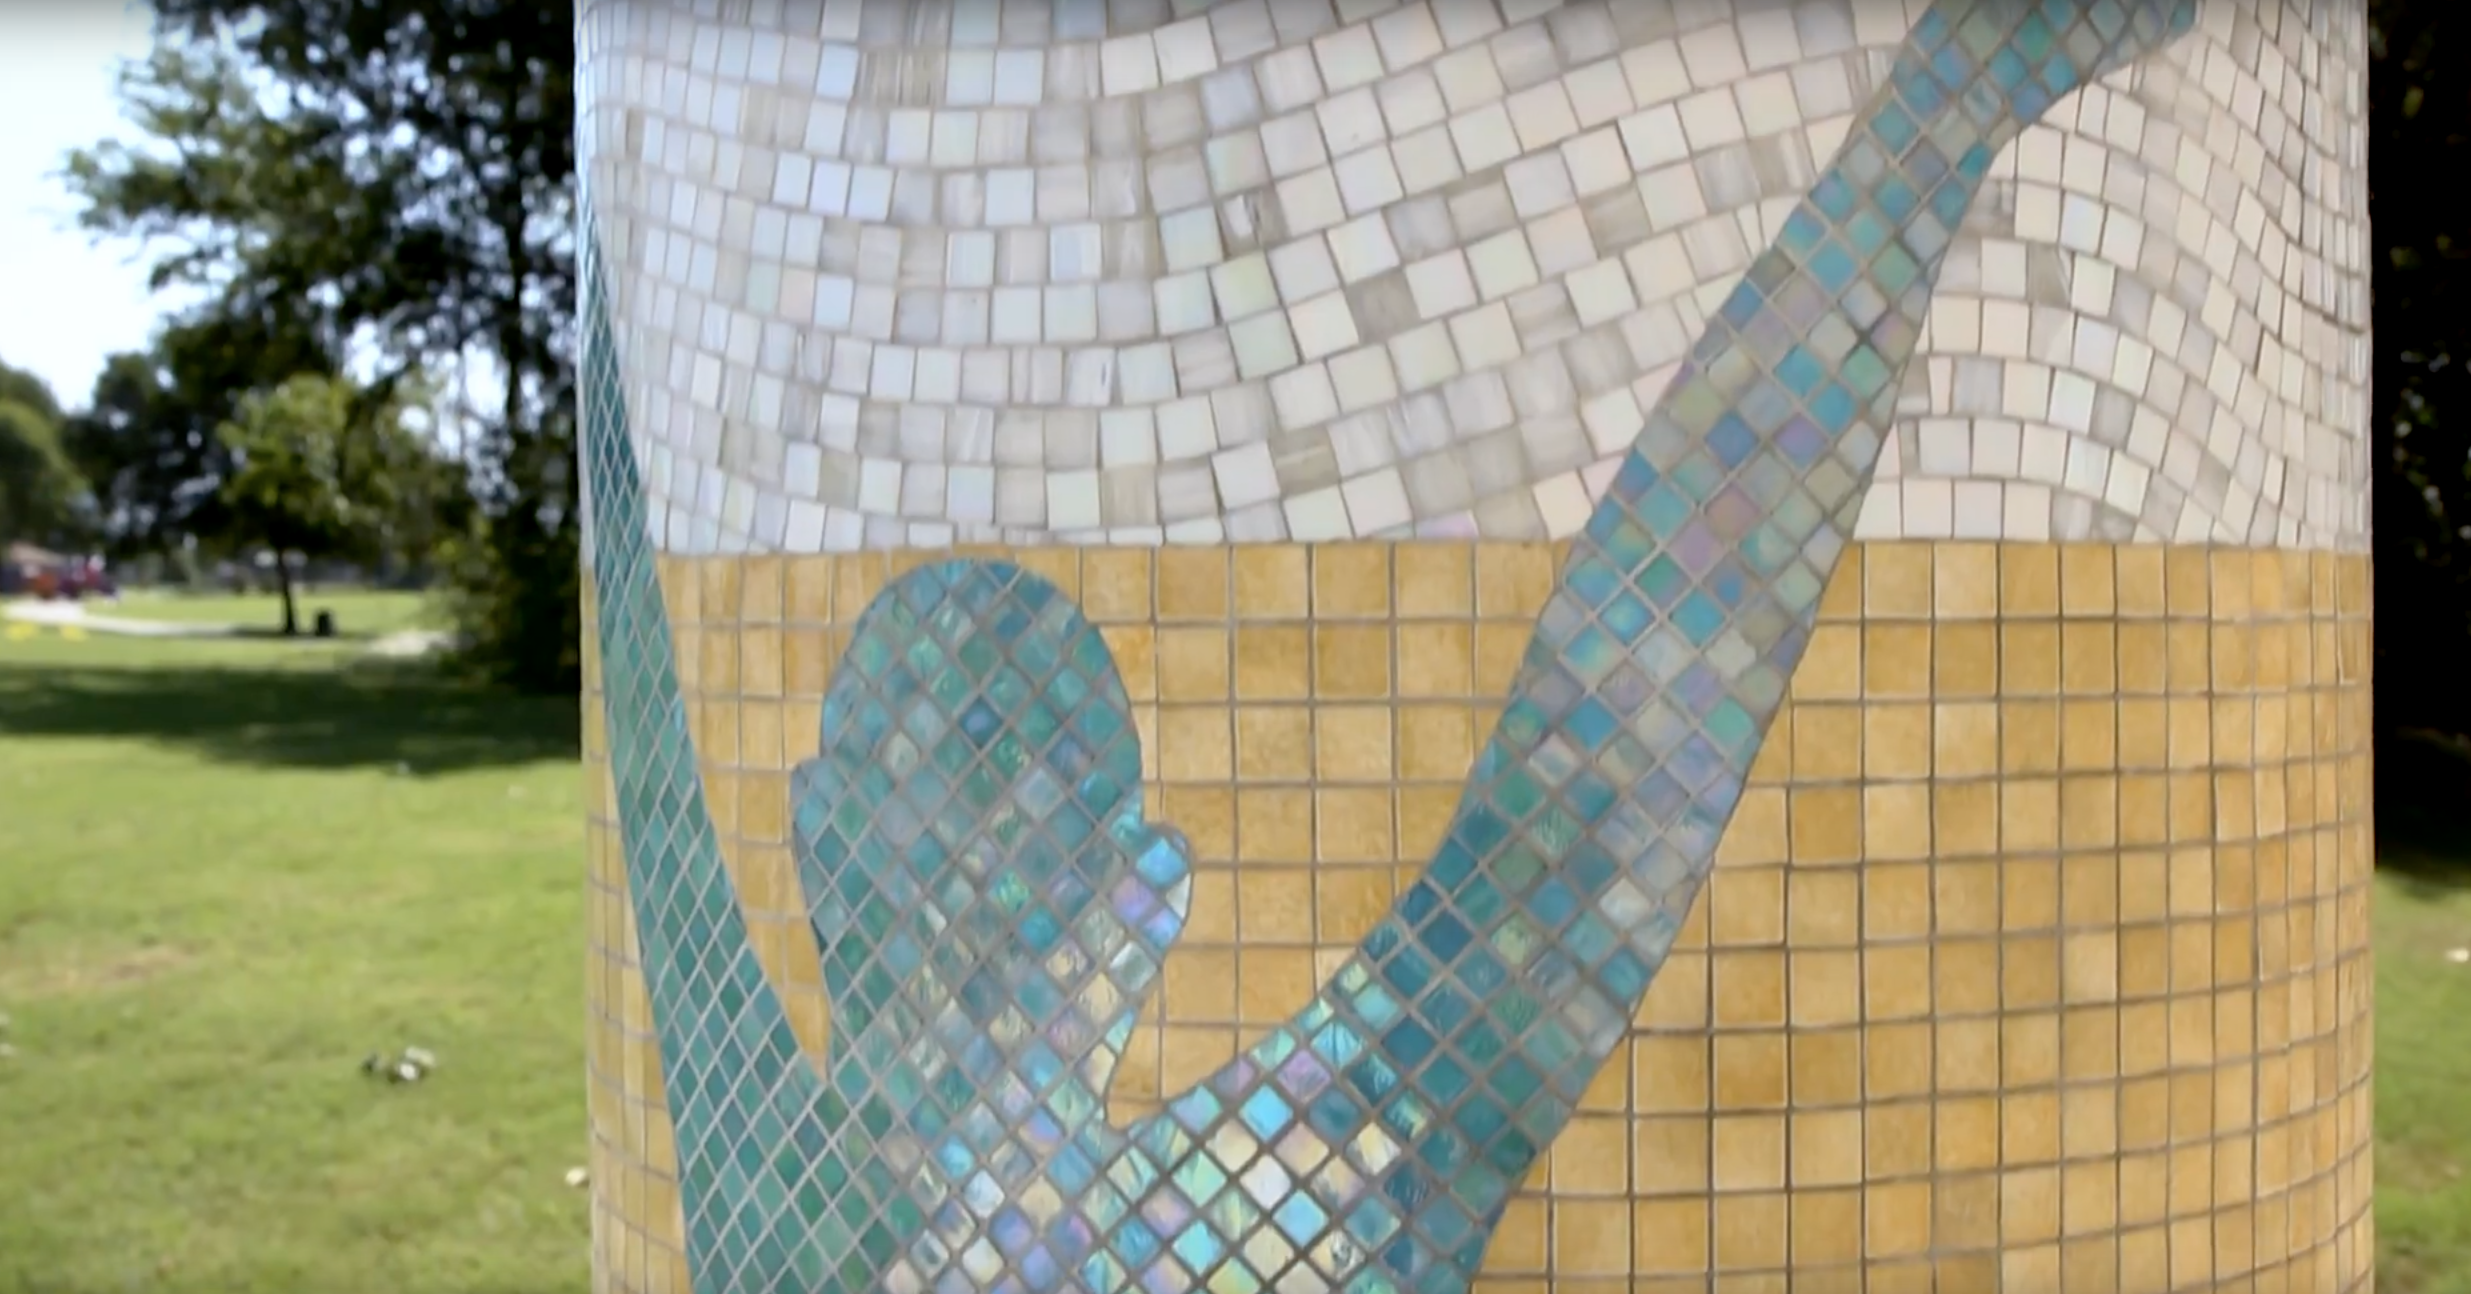 Mosaic creation for Ford Pool in Allen, Texas created by Joshua Winer